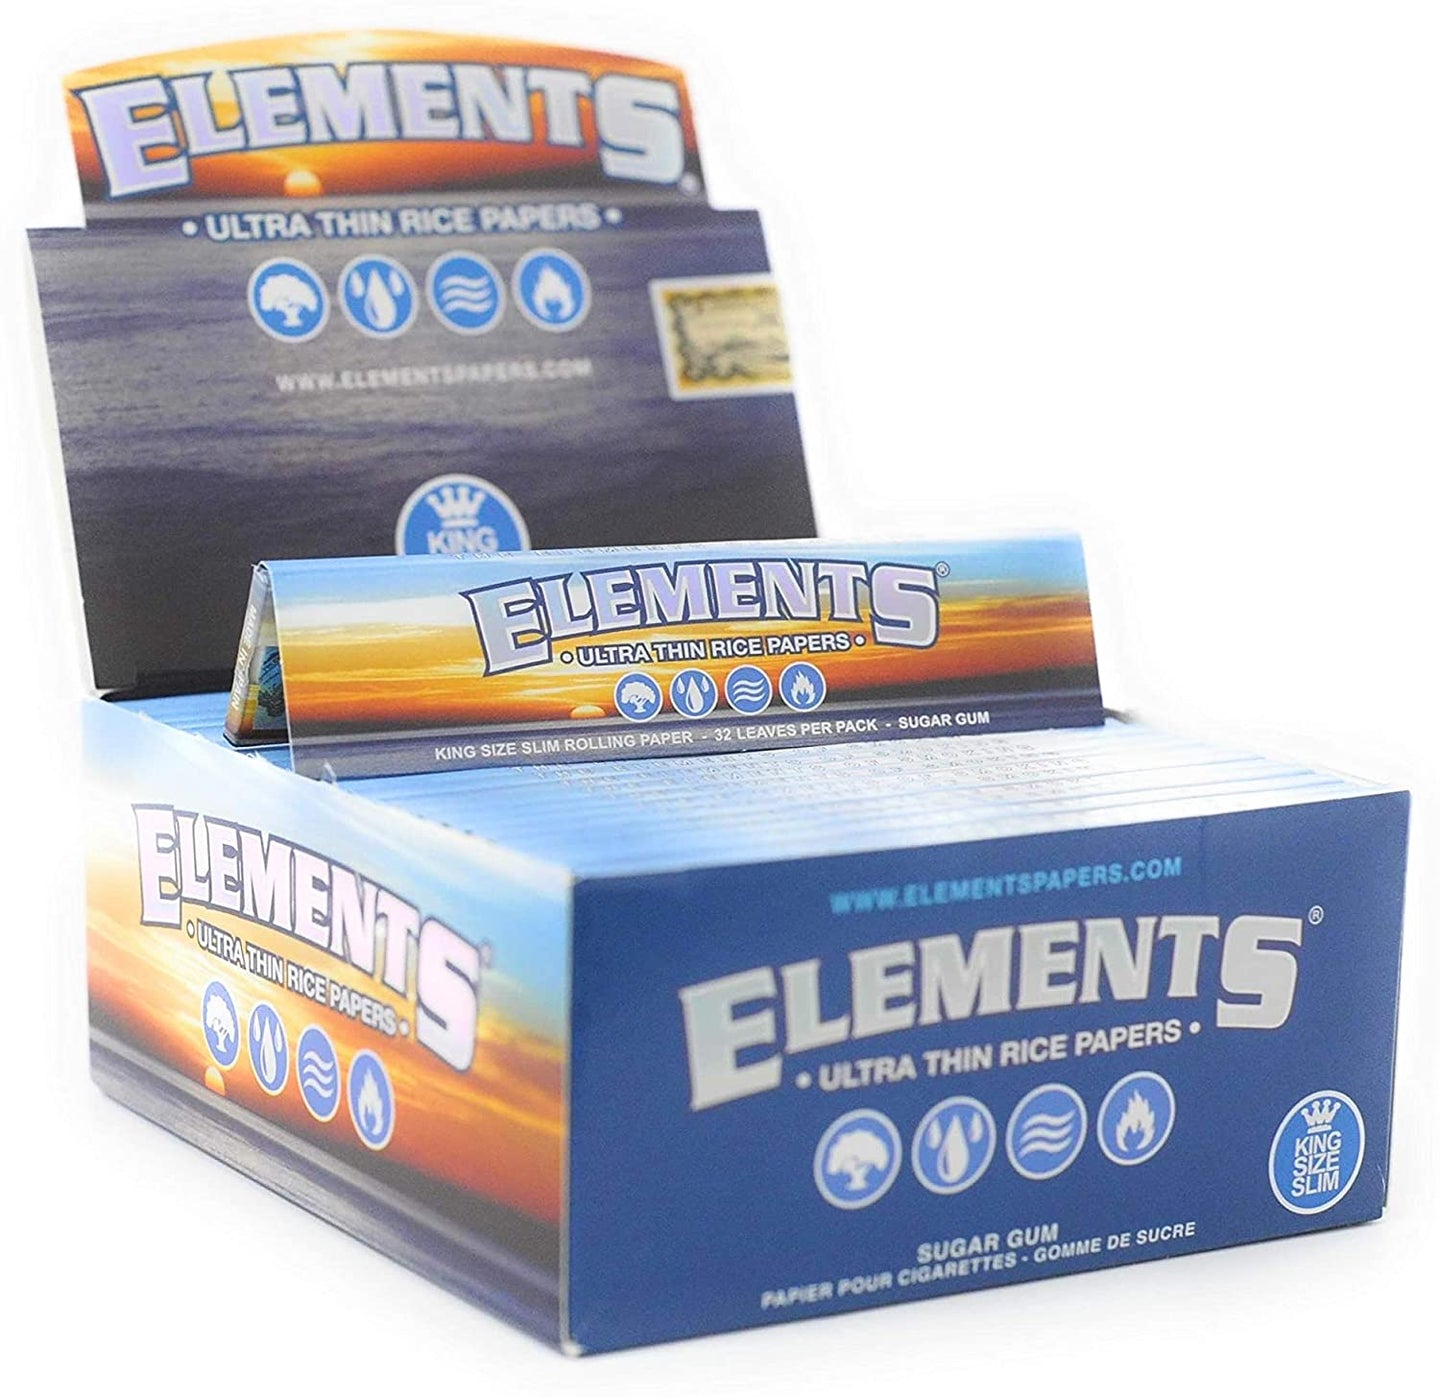 Elements Ultra Thin Kingsize Rice Papers